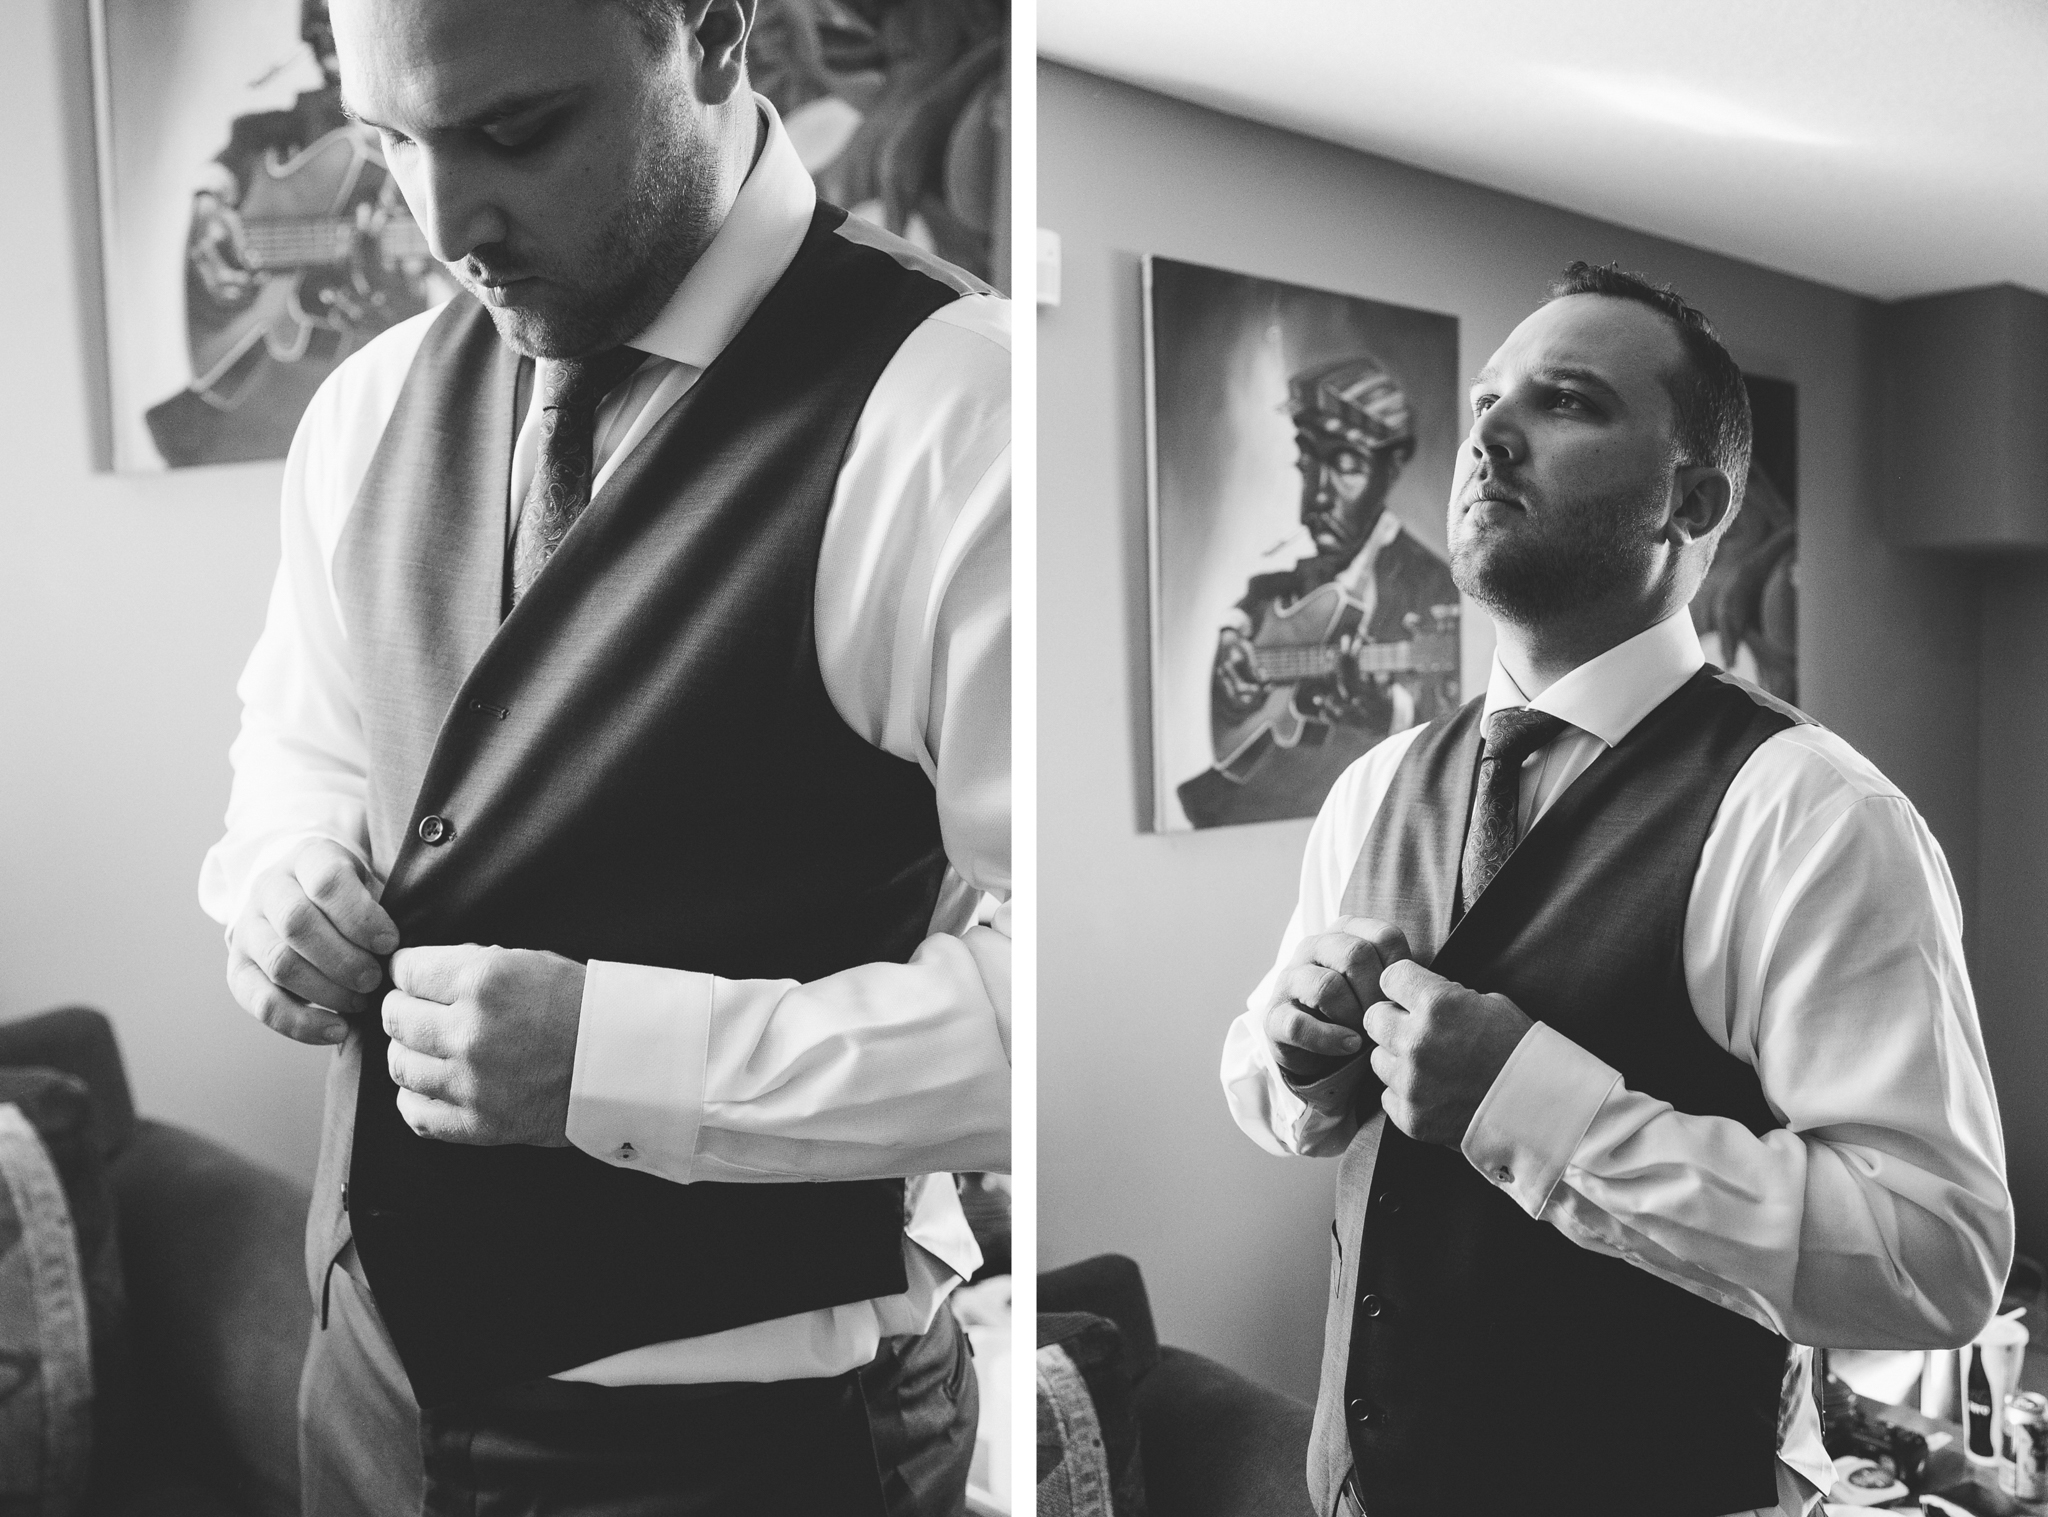 lethbridge-wedding-photographer-love-and-be-loved-photography-groom-prep-photo-image-picture-103.jpg